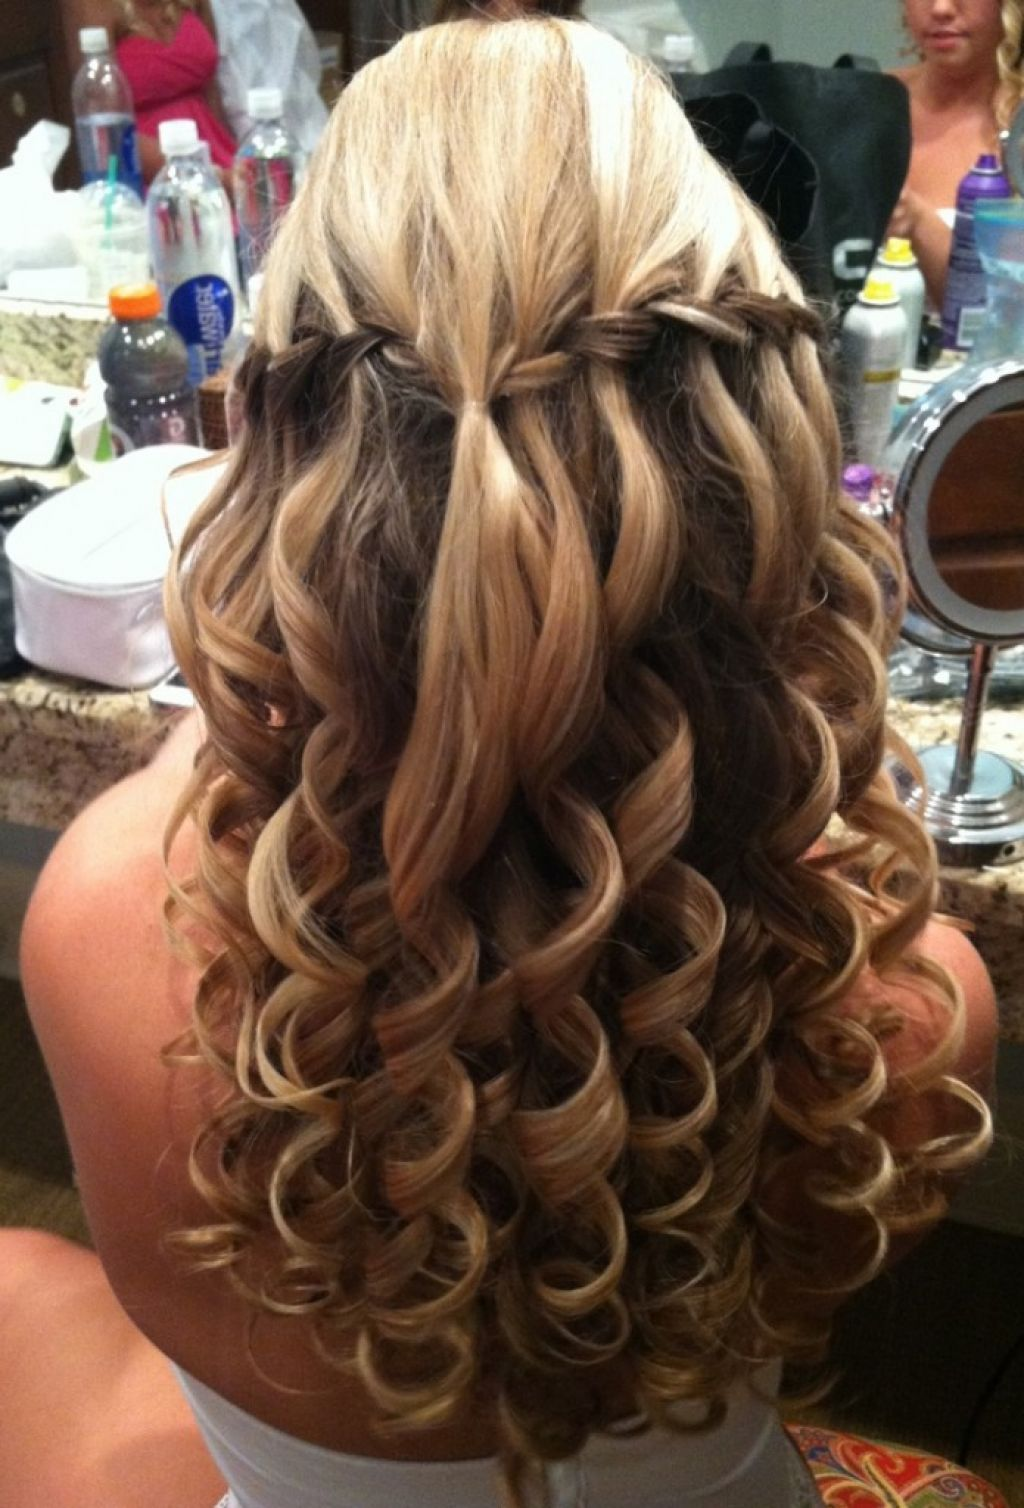 up half down hair for prom hairstyles pinterest prom